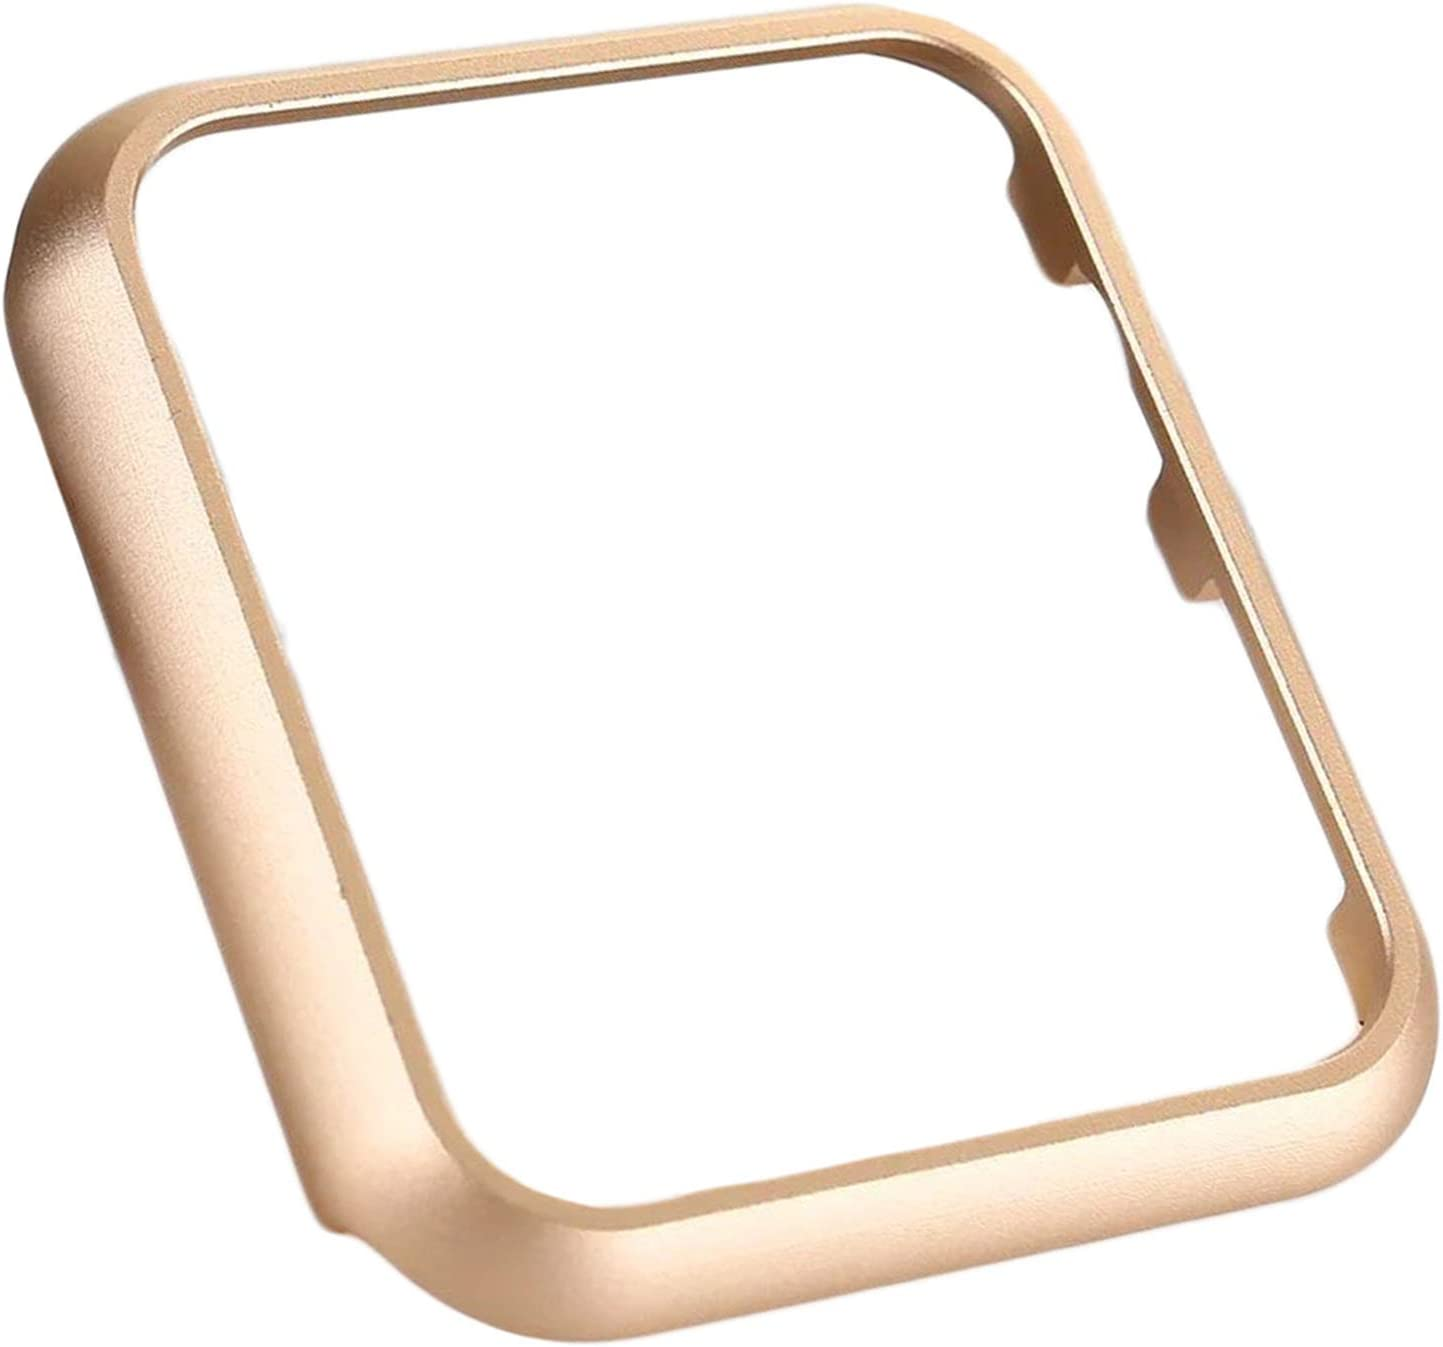 UNIYA Case Compatible with Apple Watch 38mm 42mm, Aluminum Alloy Frame Strap Bumper for iWatch Cover Series 3/2/1 Protective Shell (42 mm, Gold)